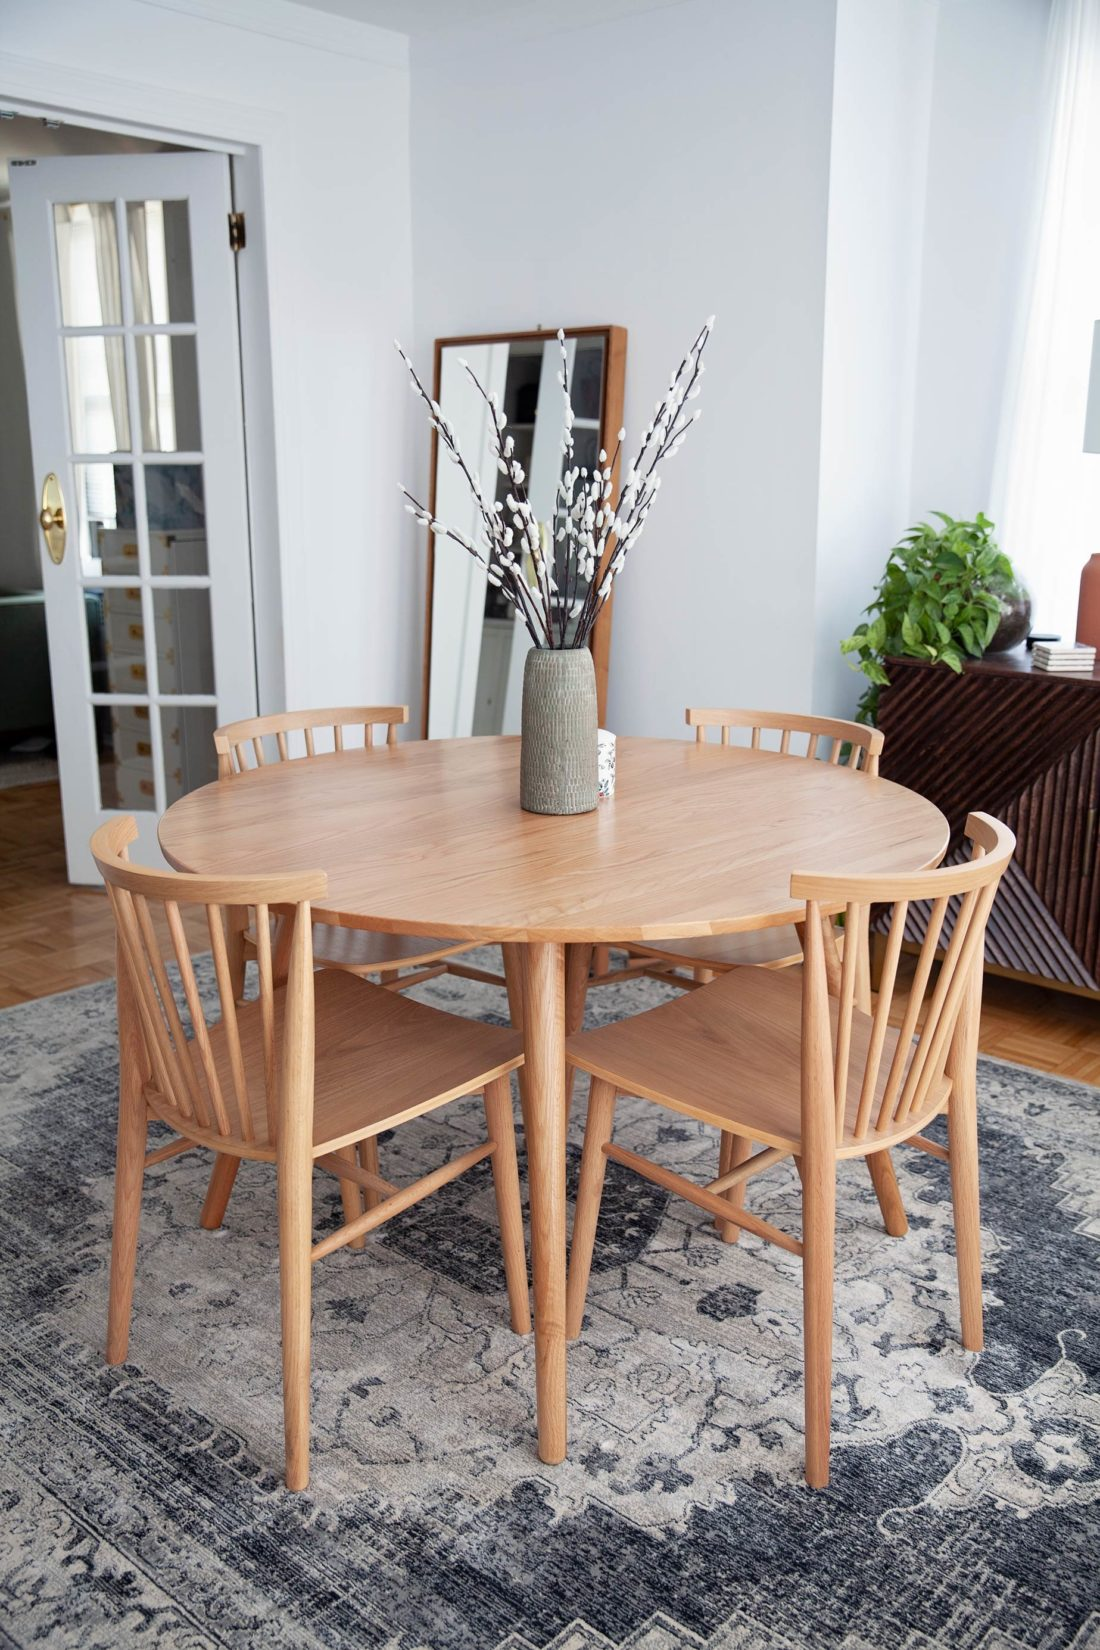 Our Article Dining Table And Chairs Olivia Jeanette